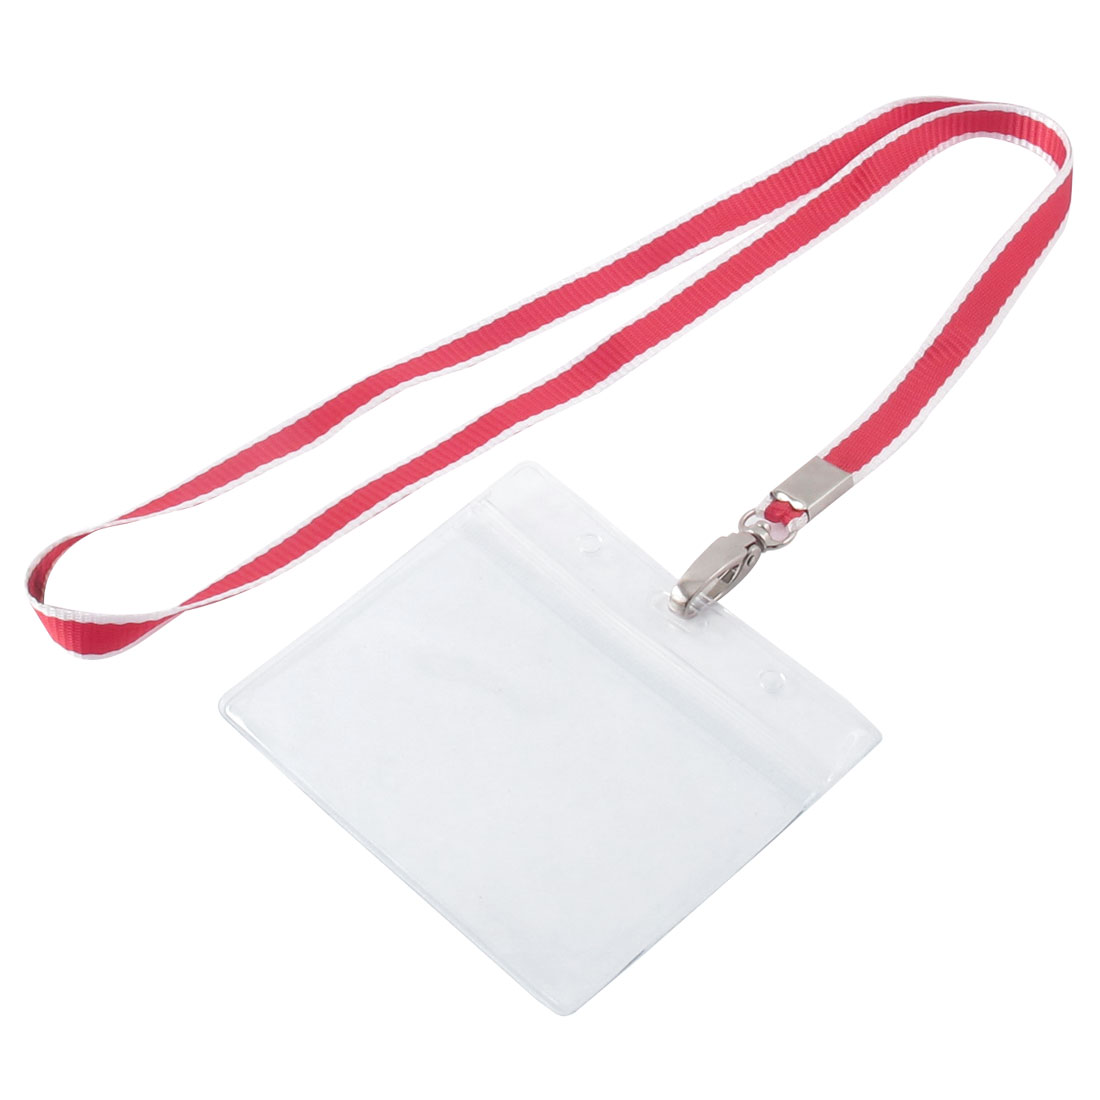 Lanyard Plastic Horizontal ID Office Business Badge Card Holder Red White Clear